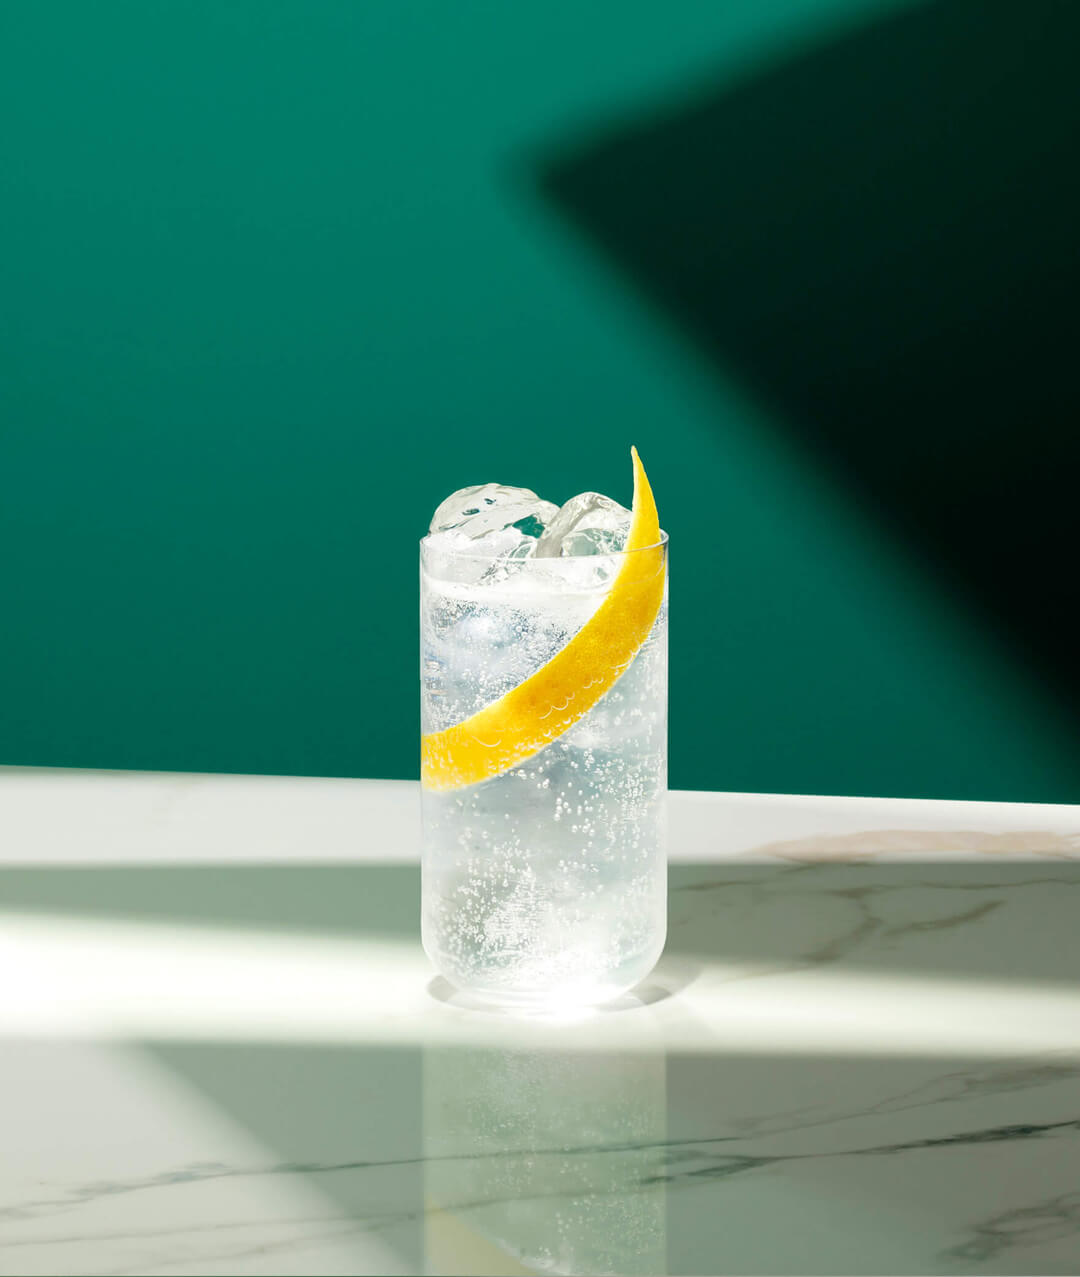 Z&T - an alcohol-free Gin and Tonic